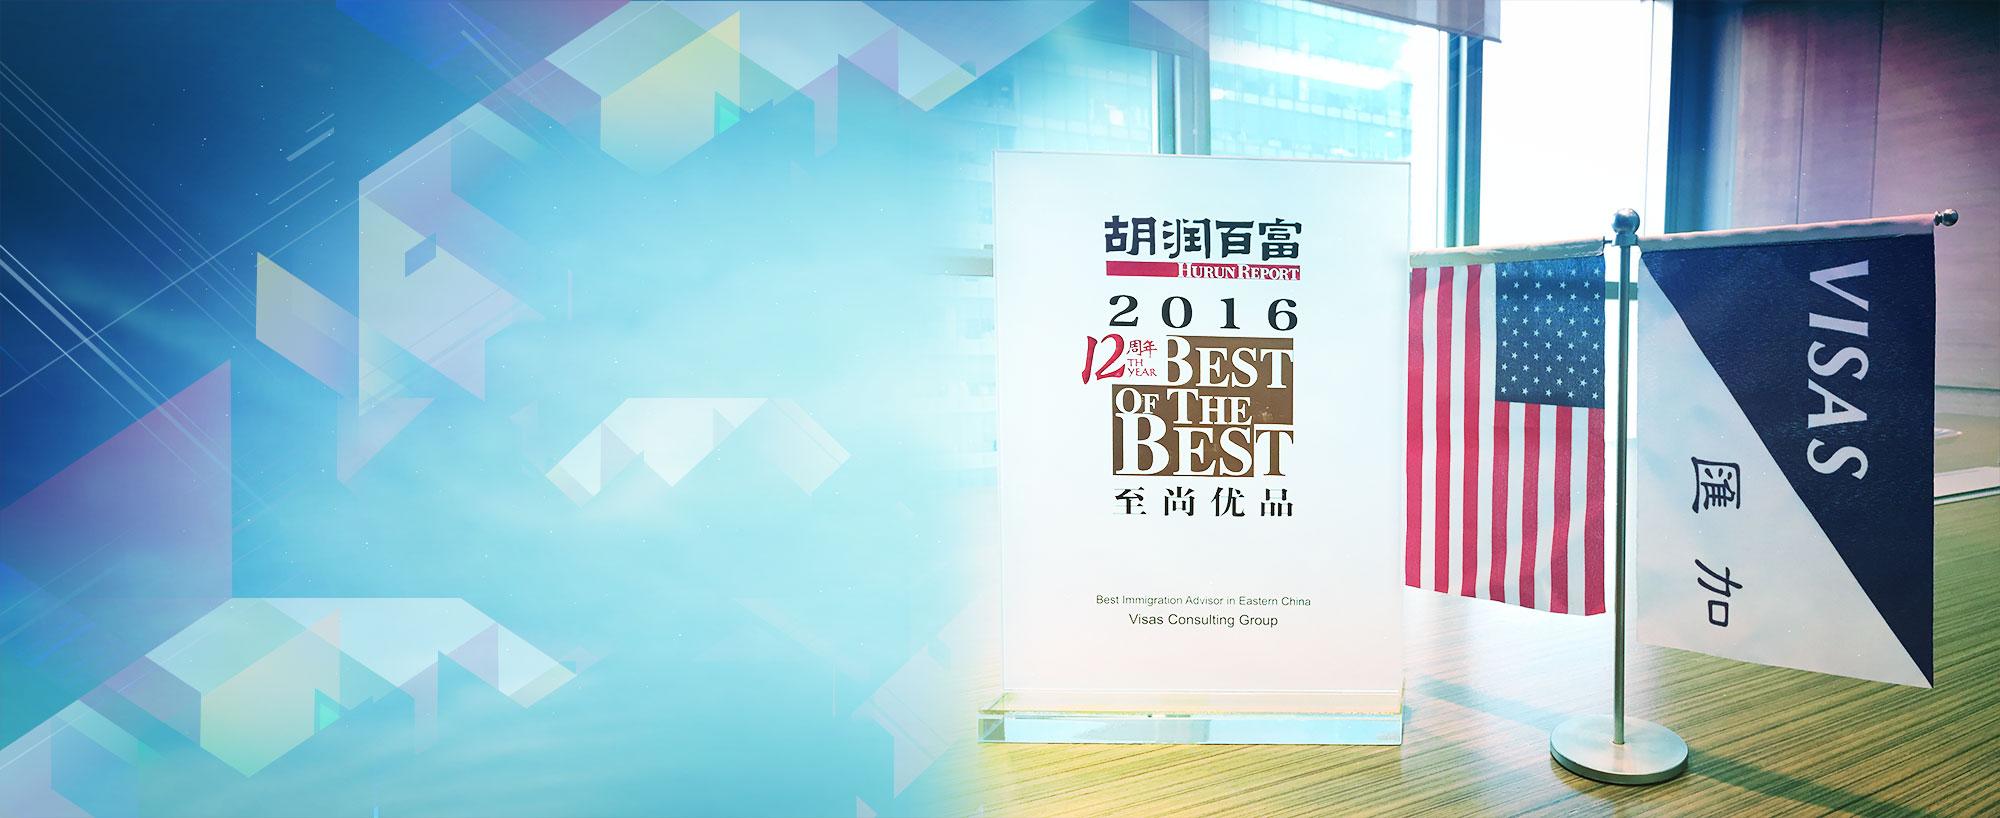 "Visas Consulting Group won Hurun Report 2016 ""Best Immigration Advisor"" award."